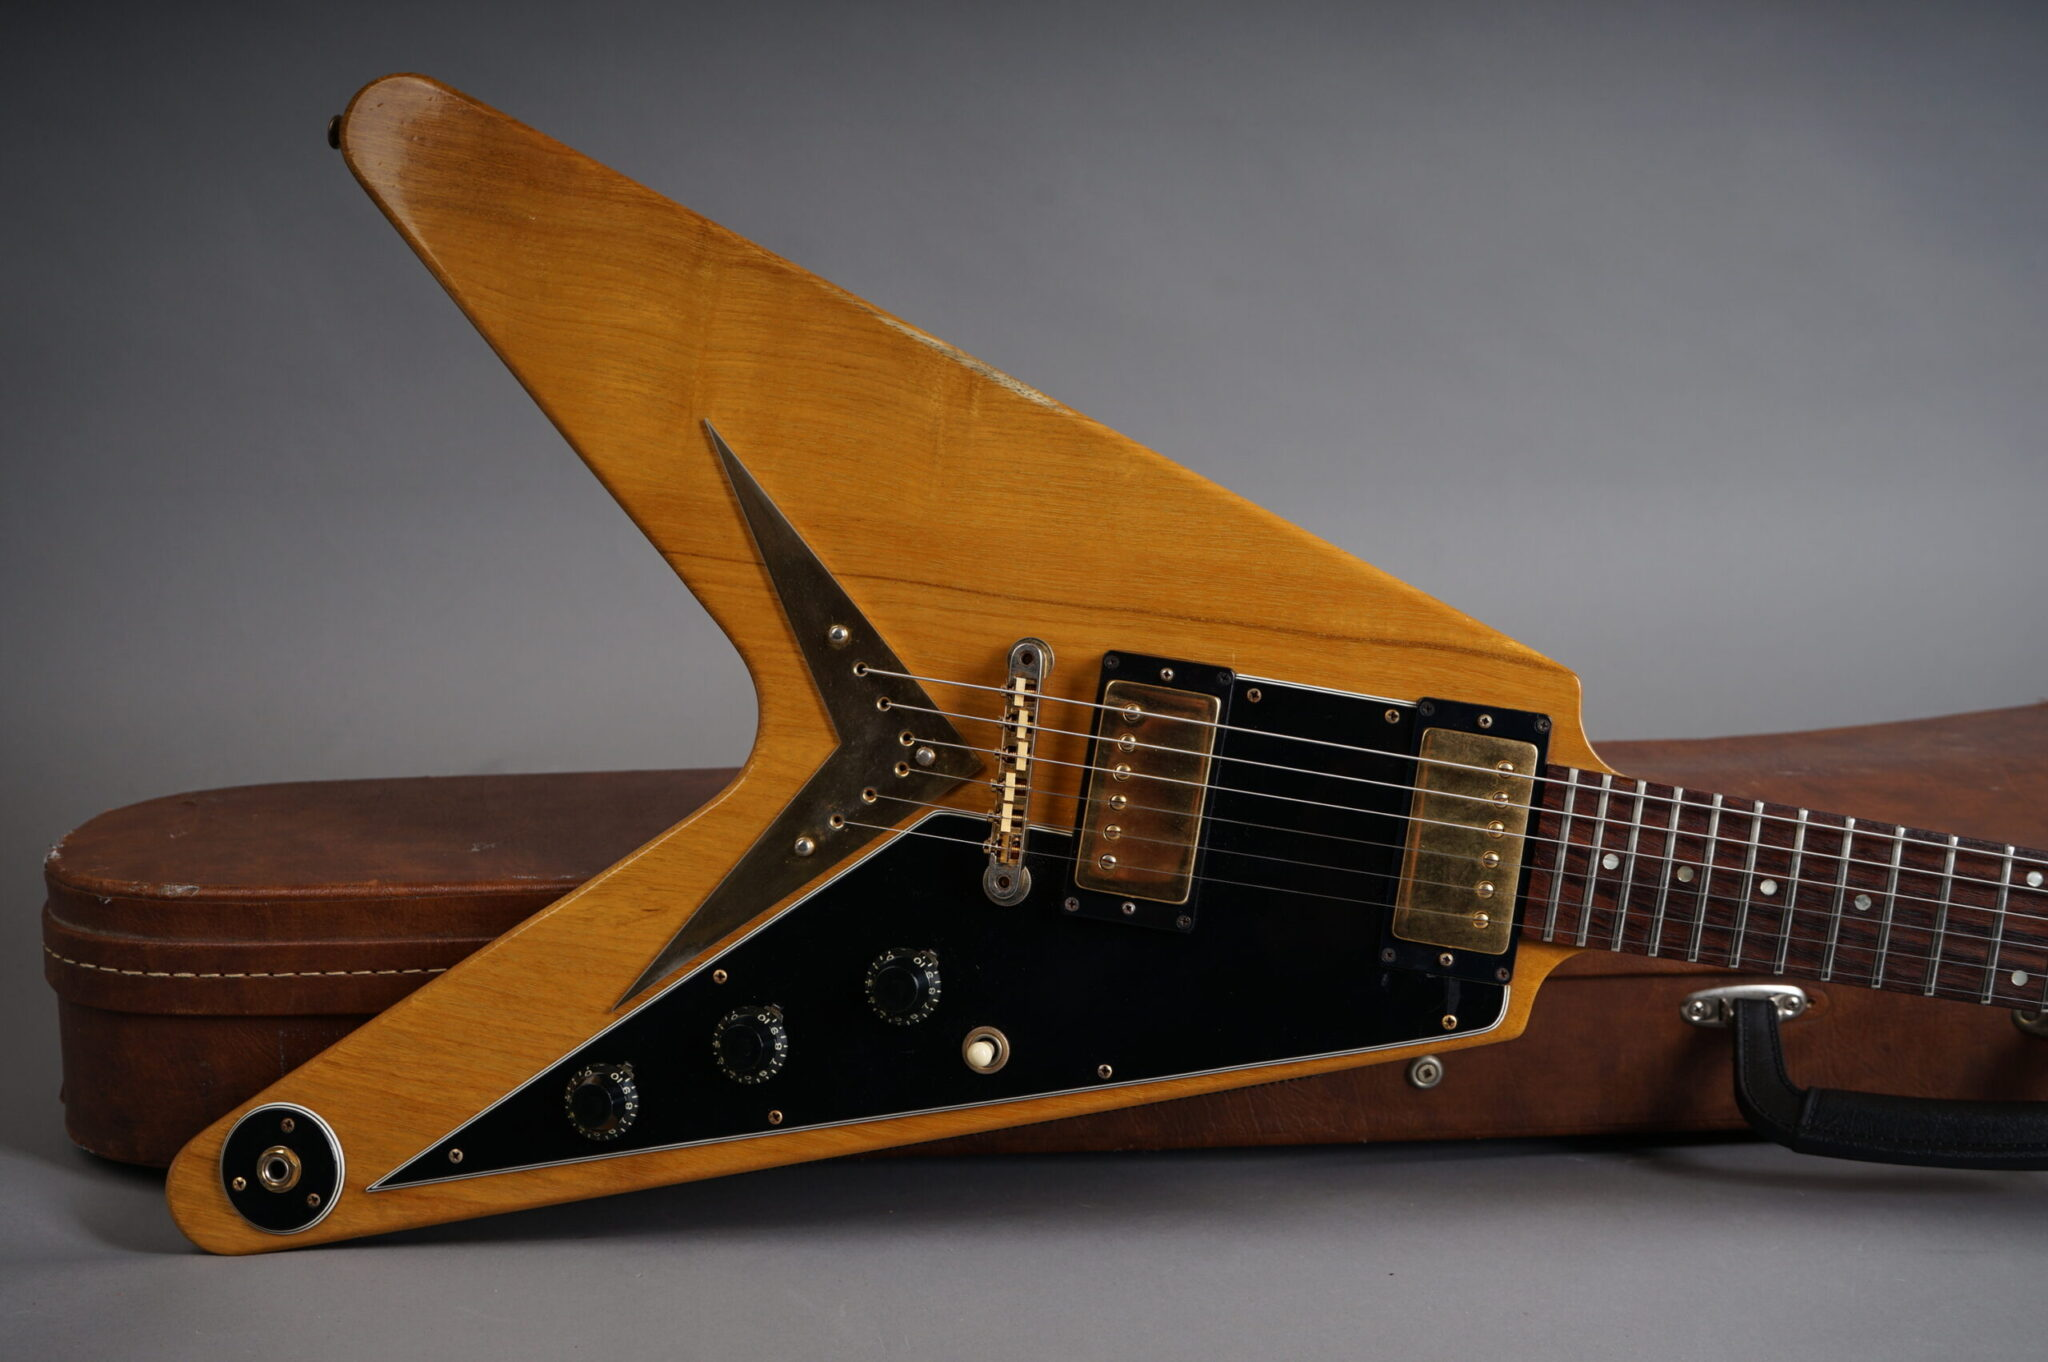 https://guitarpoint.de/app/uploads/products/1982-gibson-heritage-flying-v-korina-a-series-2/1982.Gibson-Flying-V-Heritage-Korina-A228-7-scaled-2048x1362.jpg